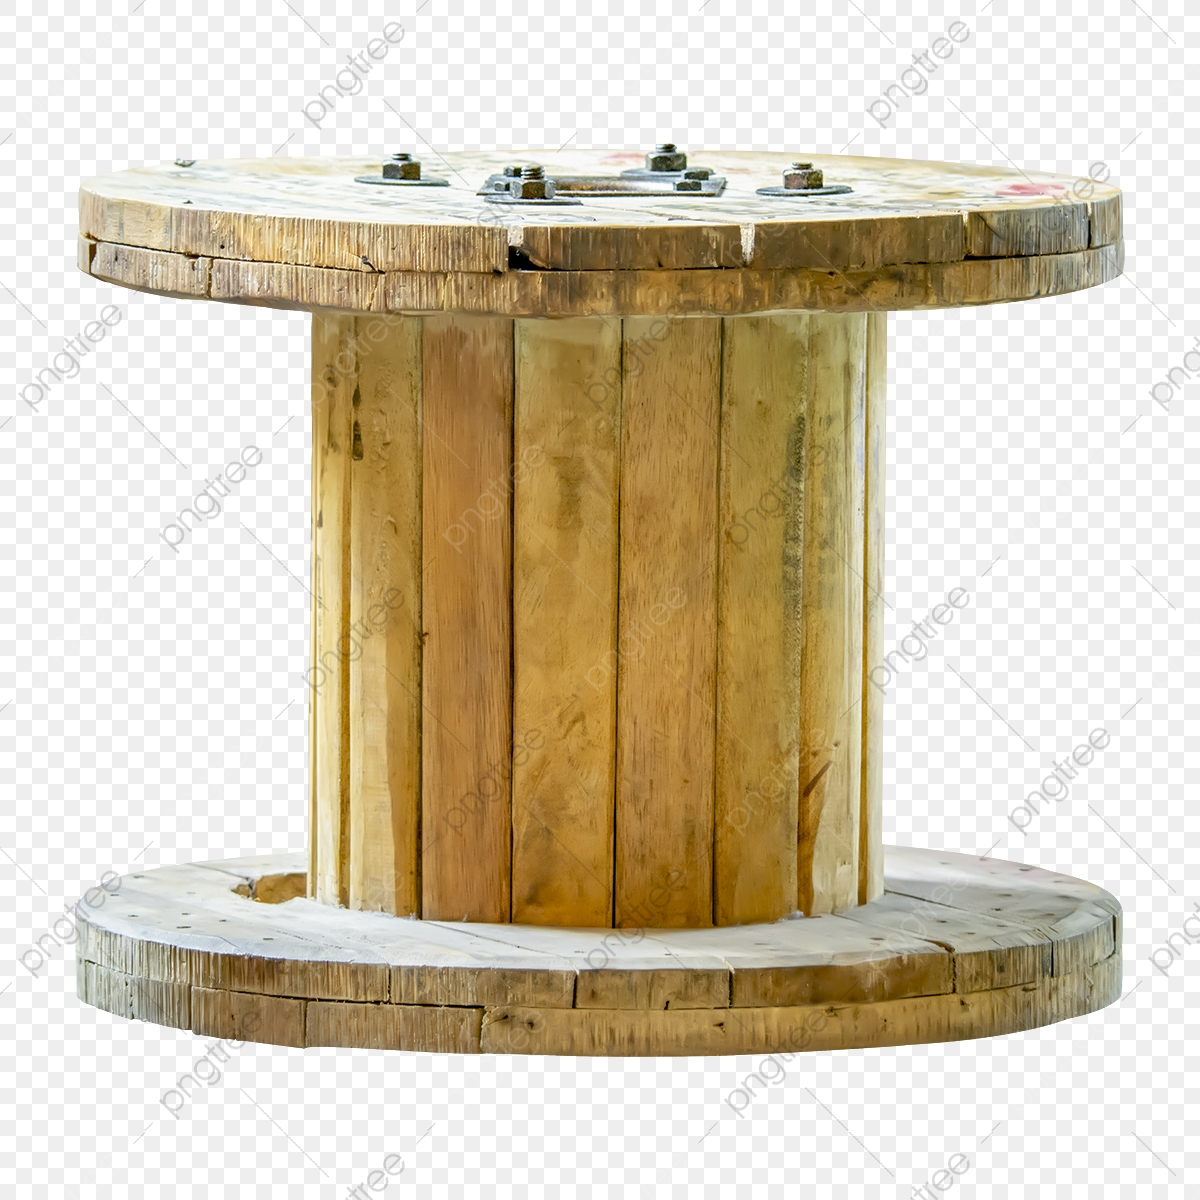 Cable Spool Or Old Wooden Reel Of Steel Cable Wooden Roll Rollers